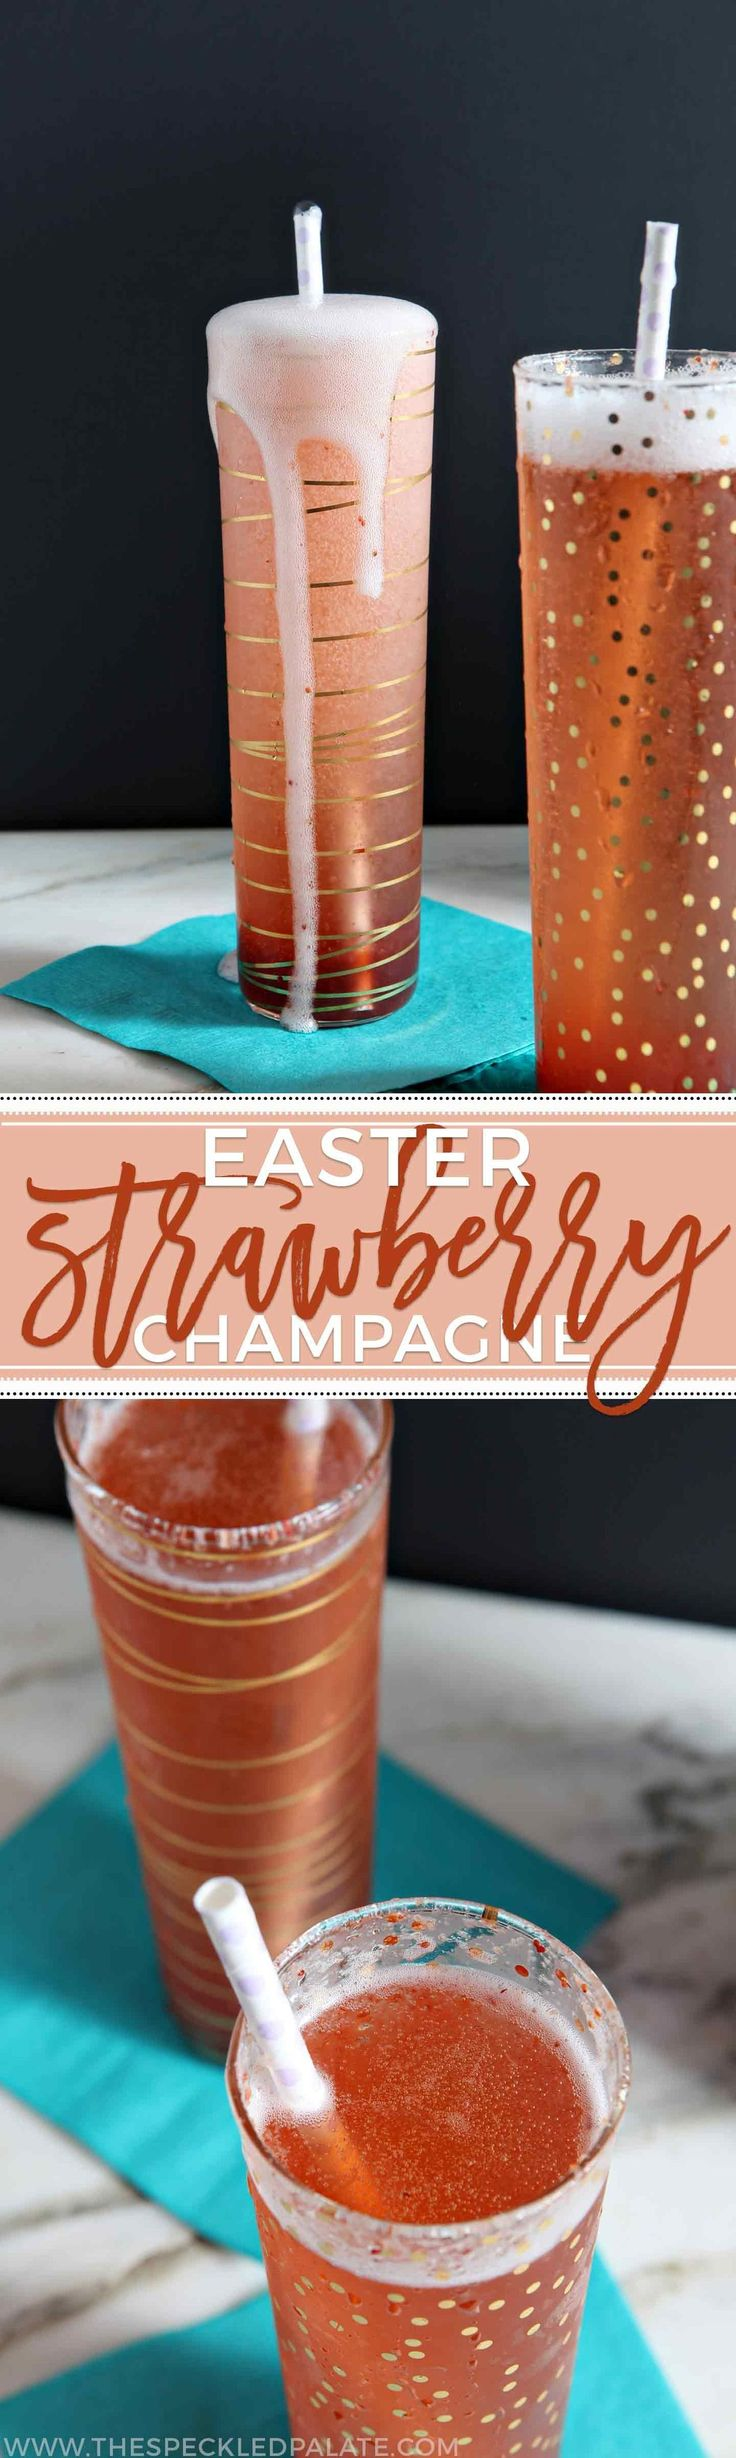 Easter brunch never looked so good! Rosé Champagne mixes with strawberry simple syrup to create these pink Easter Strawberry Champagne cocktails. #recipe #brunch #cocktail #cocktailrecipes